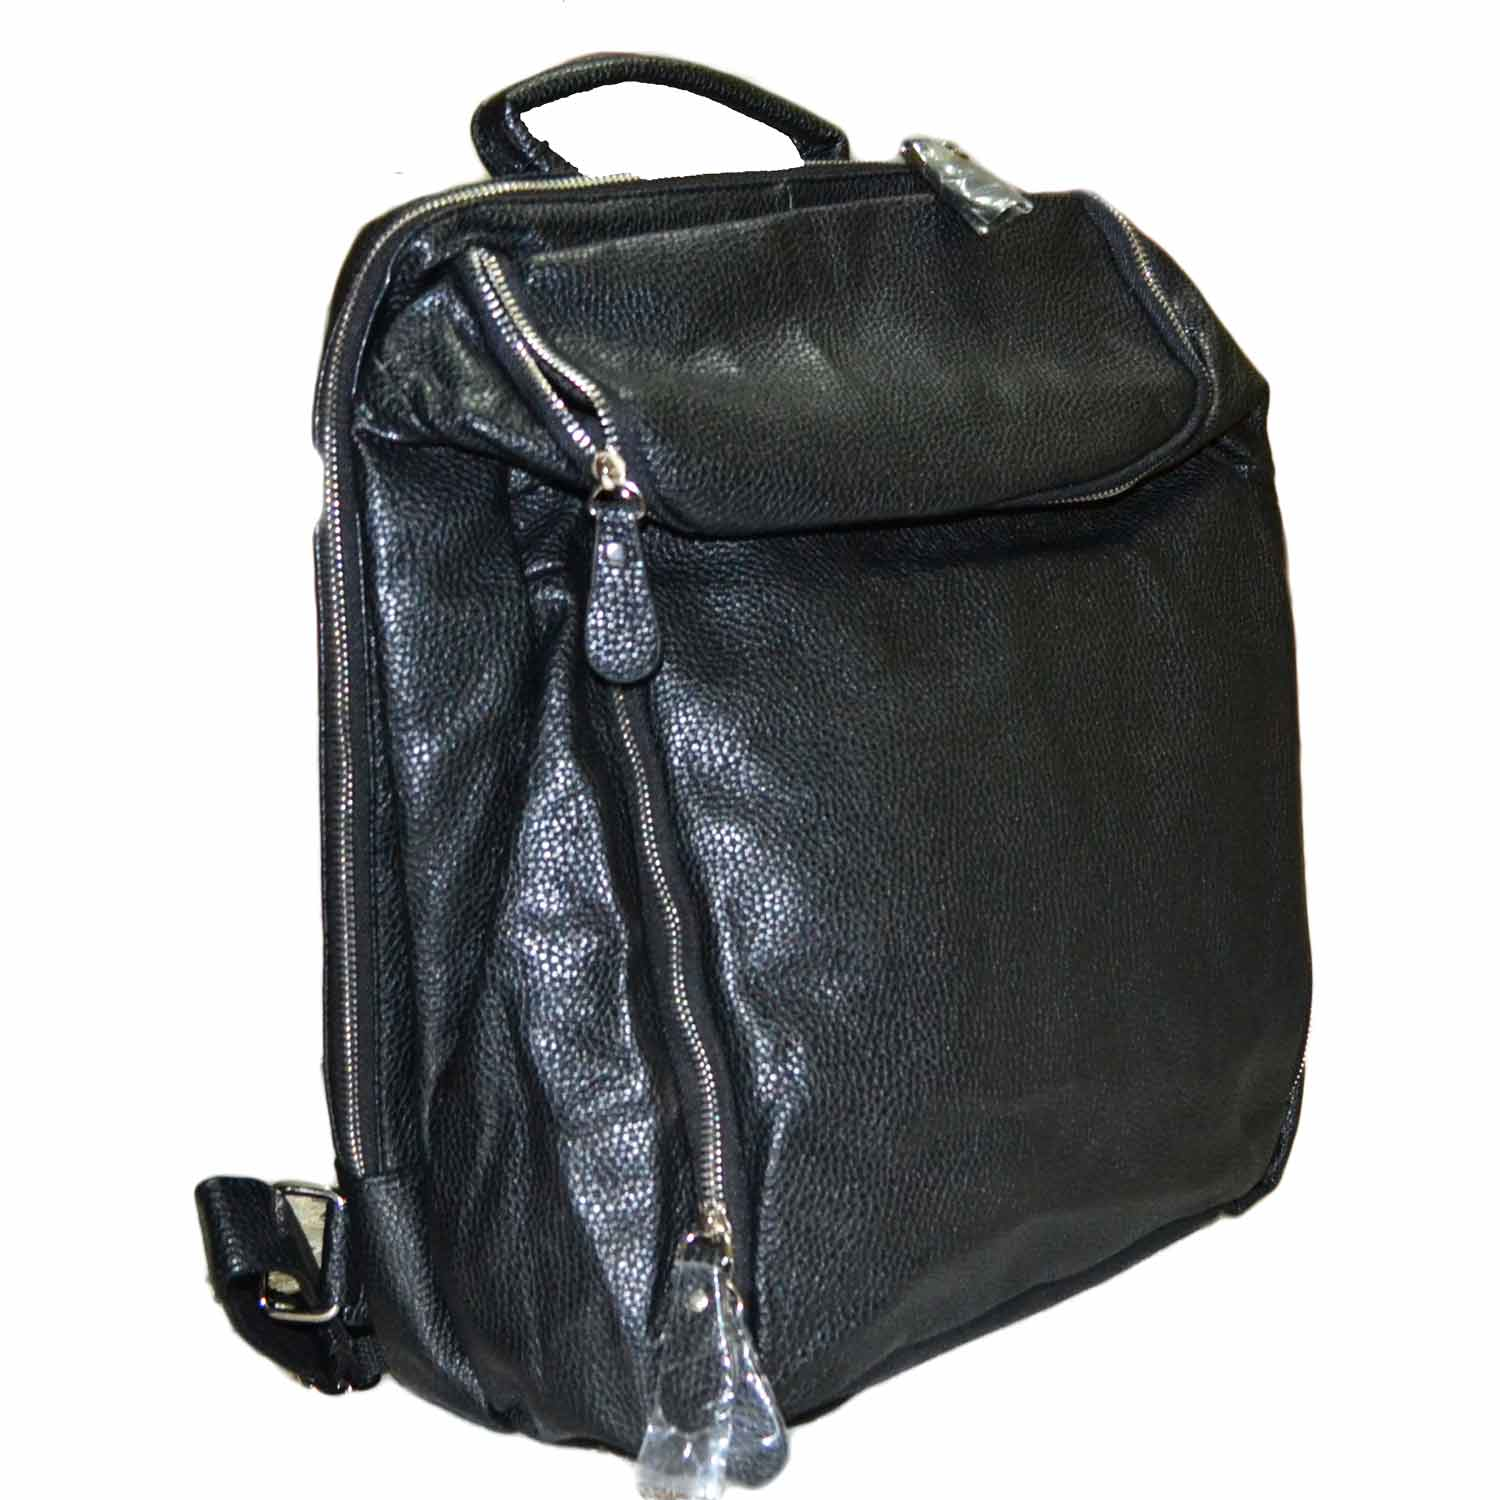 Uomo Zaino Borsa  Zainetto Messenger Backpack Handbag Satchel Viaggio Bag.